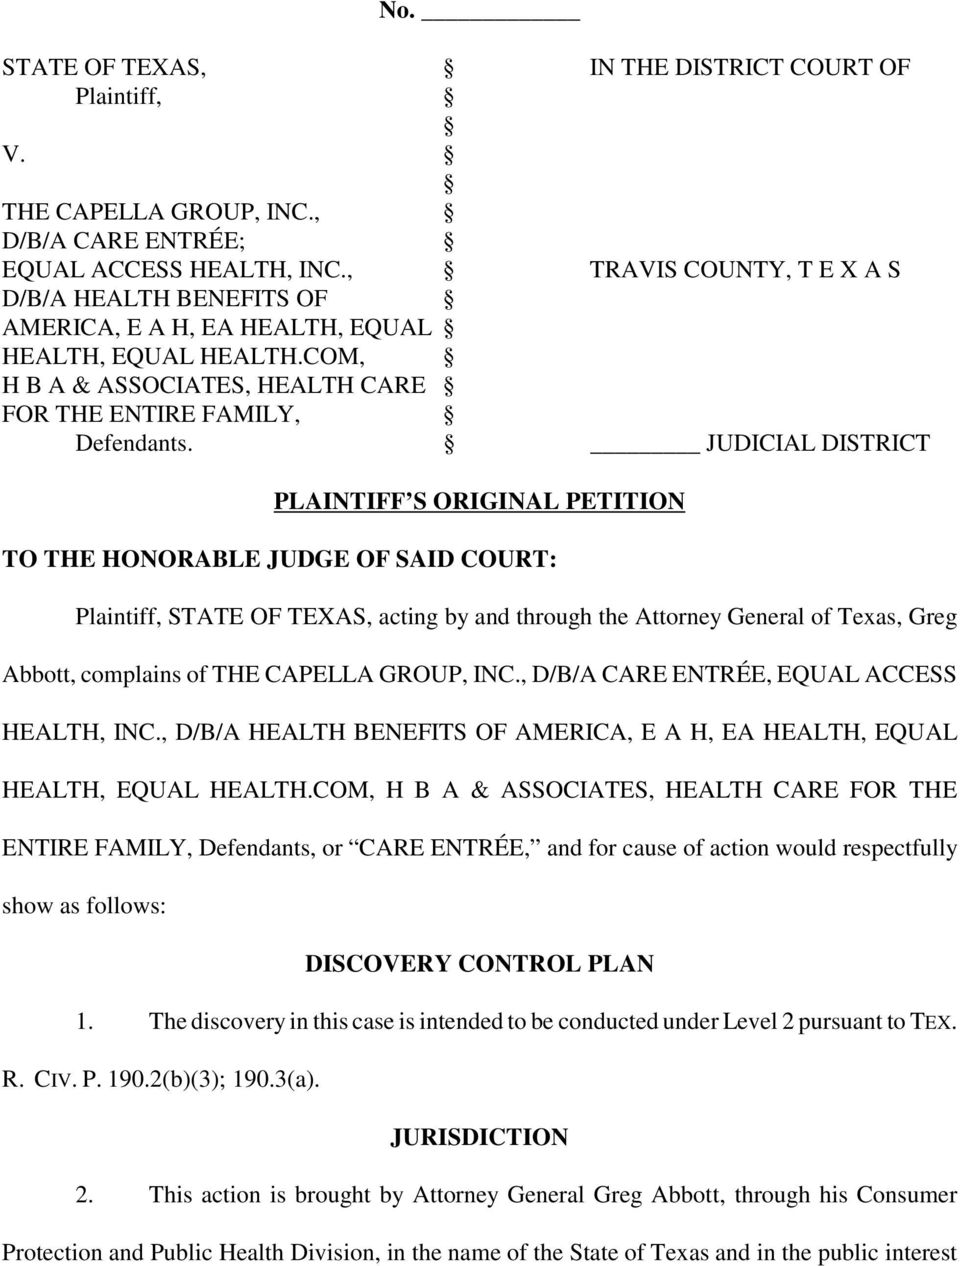 JUDICIAL DISTRICT PLAINTIFF S ORIGINAL PETITION TO THE HONORABLE JUDGE OF SAID COURT: Plaintiff, STATE OF TEXAS, acting by and through the Attorney General of Texas, Greg Abbott, complains of THE